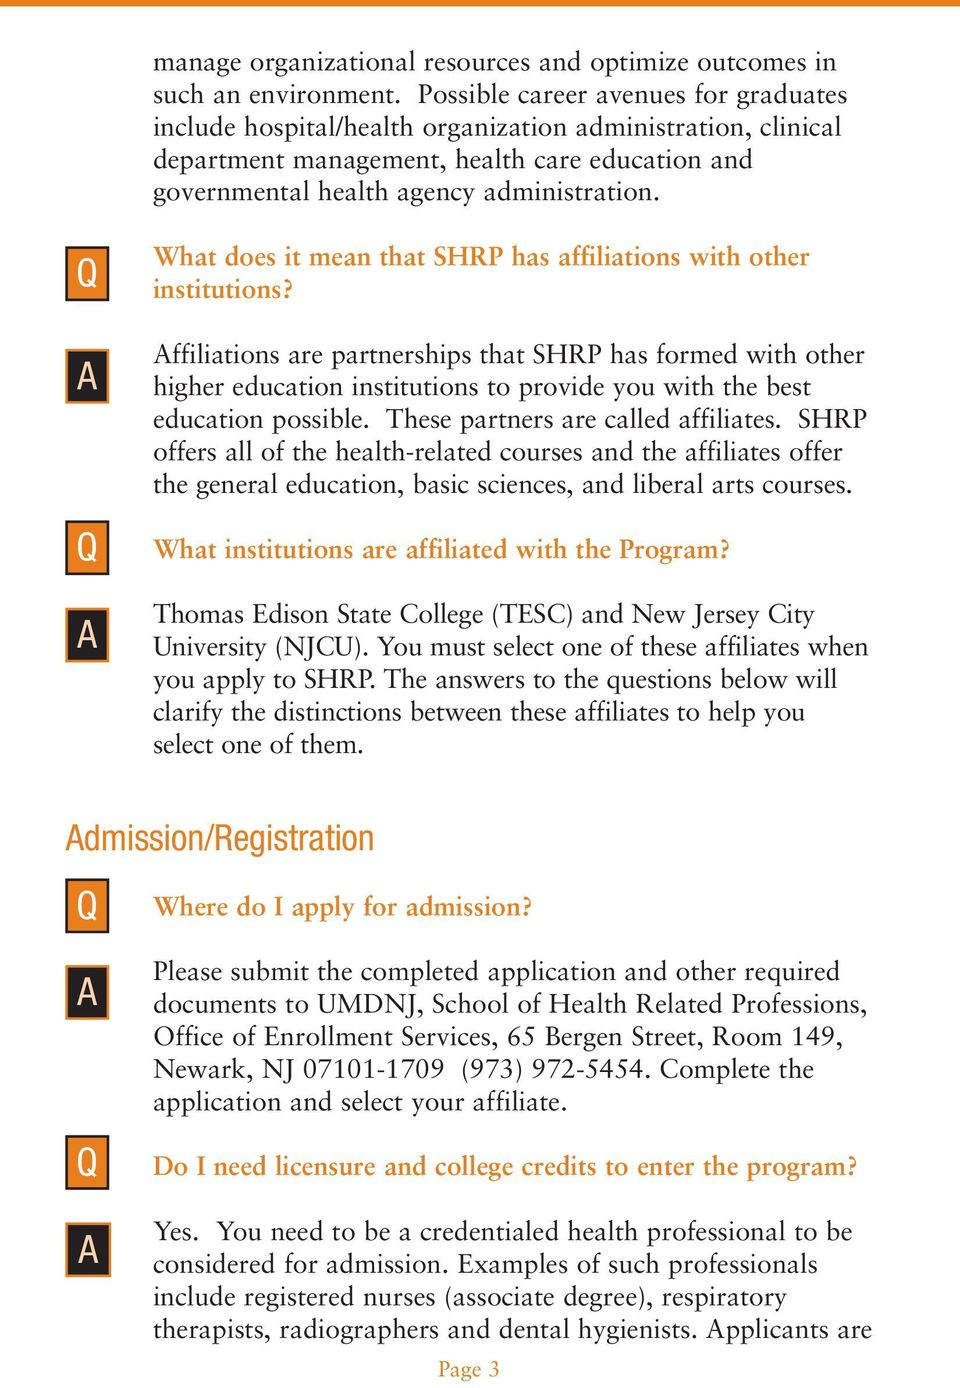 What does it mean that SHRP has affiliations with other institutions?